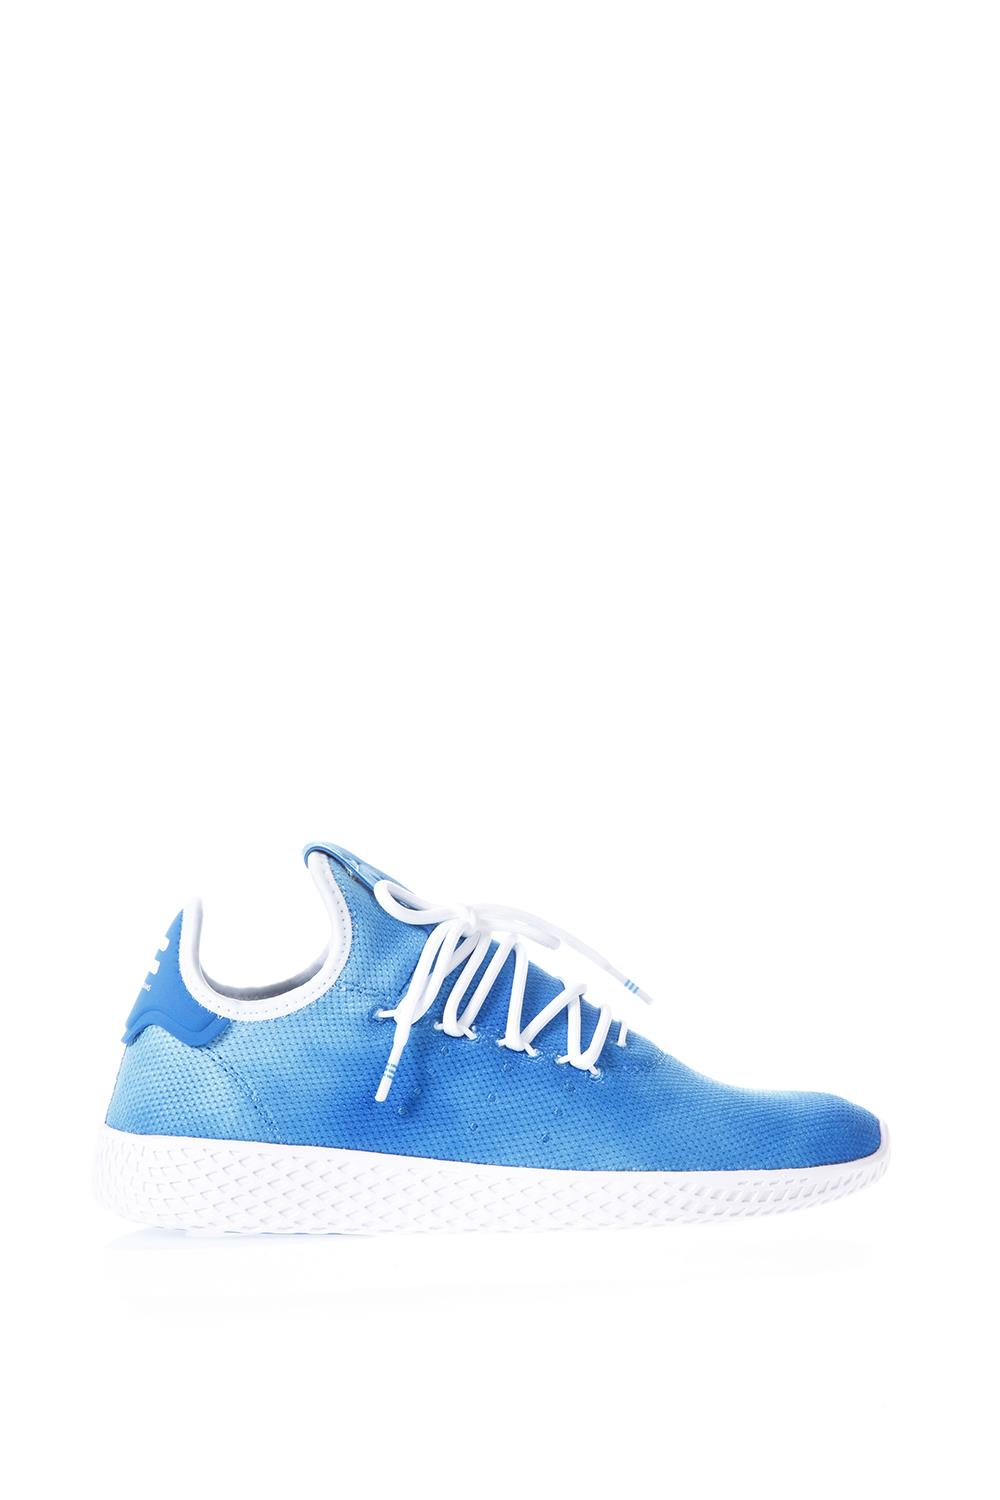 info for fb17a 1a380 TENNIS HU RED SNEAKERS SS 2018